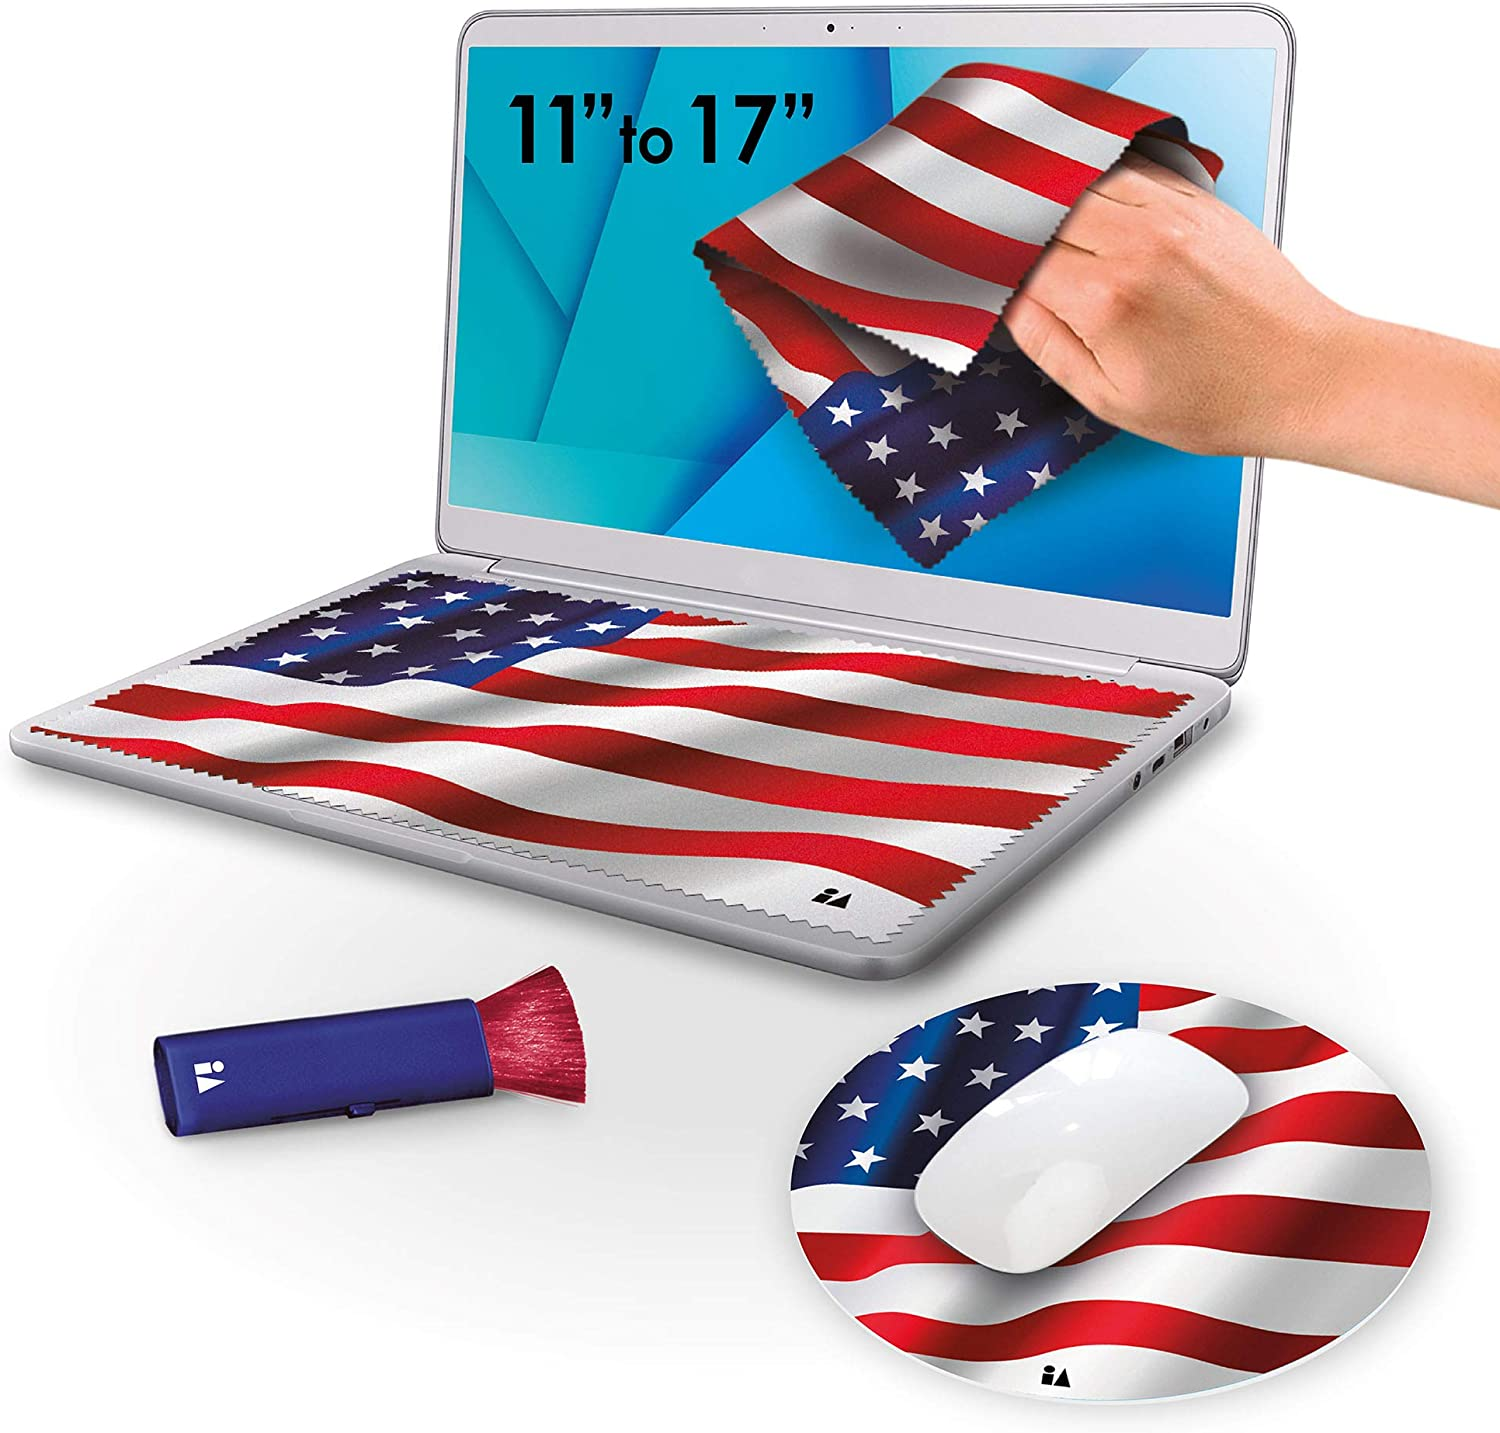 """4 in 1 Microfiber Laptop Screen Cleaning Cloth Set Keyboard Screen Protector Includes 2 Cloths, 1 Dust Brush, 1 Mousepad for 11"""" 12"""" 13"""" 14"""" 15"""" 17"""" Inch Computer Notebook Tablet (American-Flag)"""